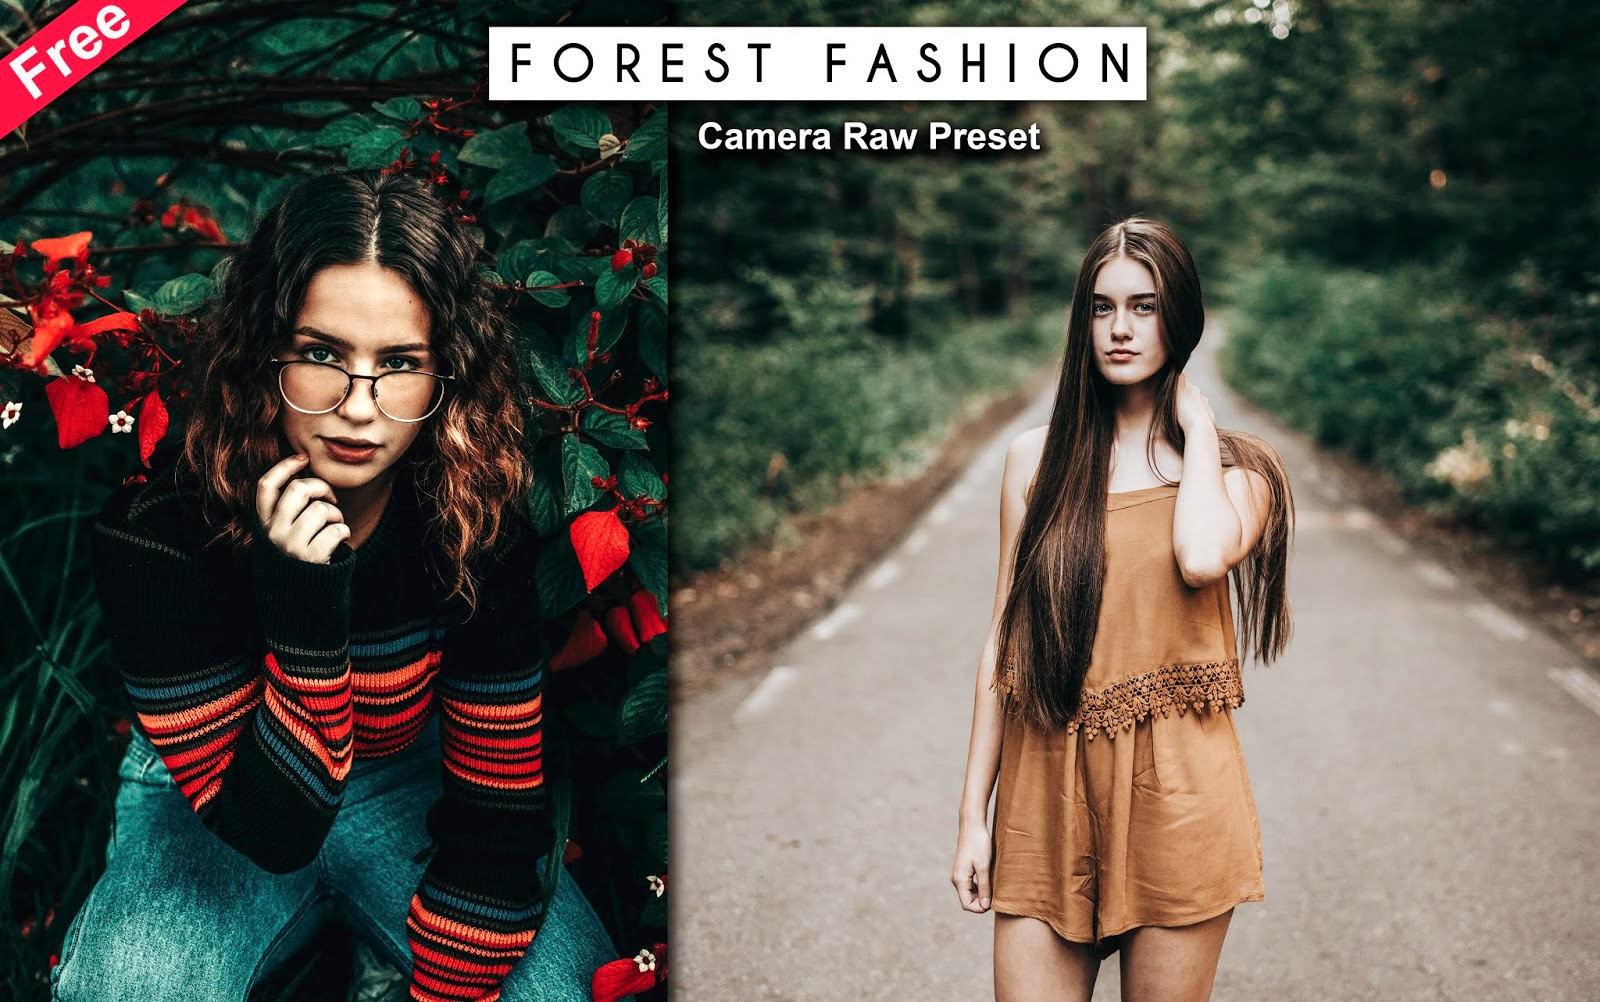 Download Forest Fashion Vibes Camera Raw Preset for Free | How to Edit Your Photos Like Forest Fashion Vibes in Photoshop